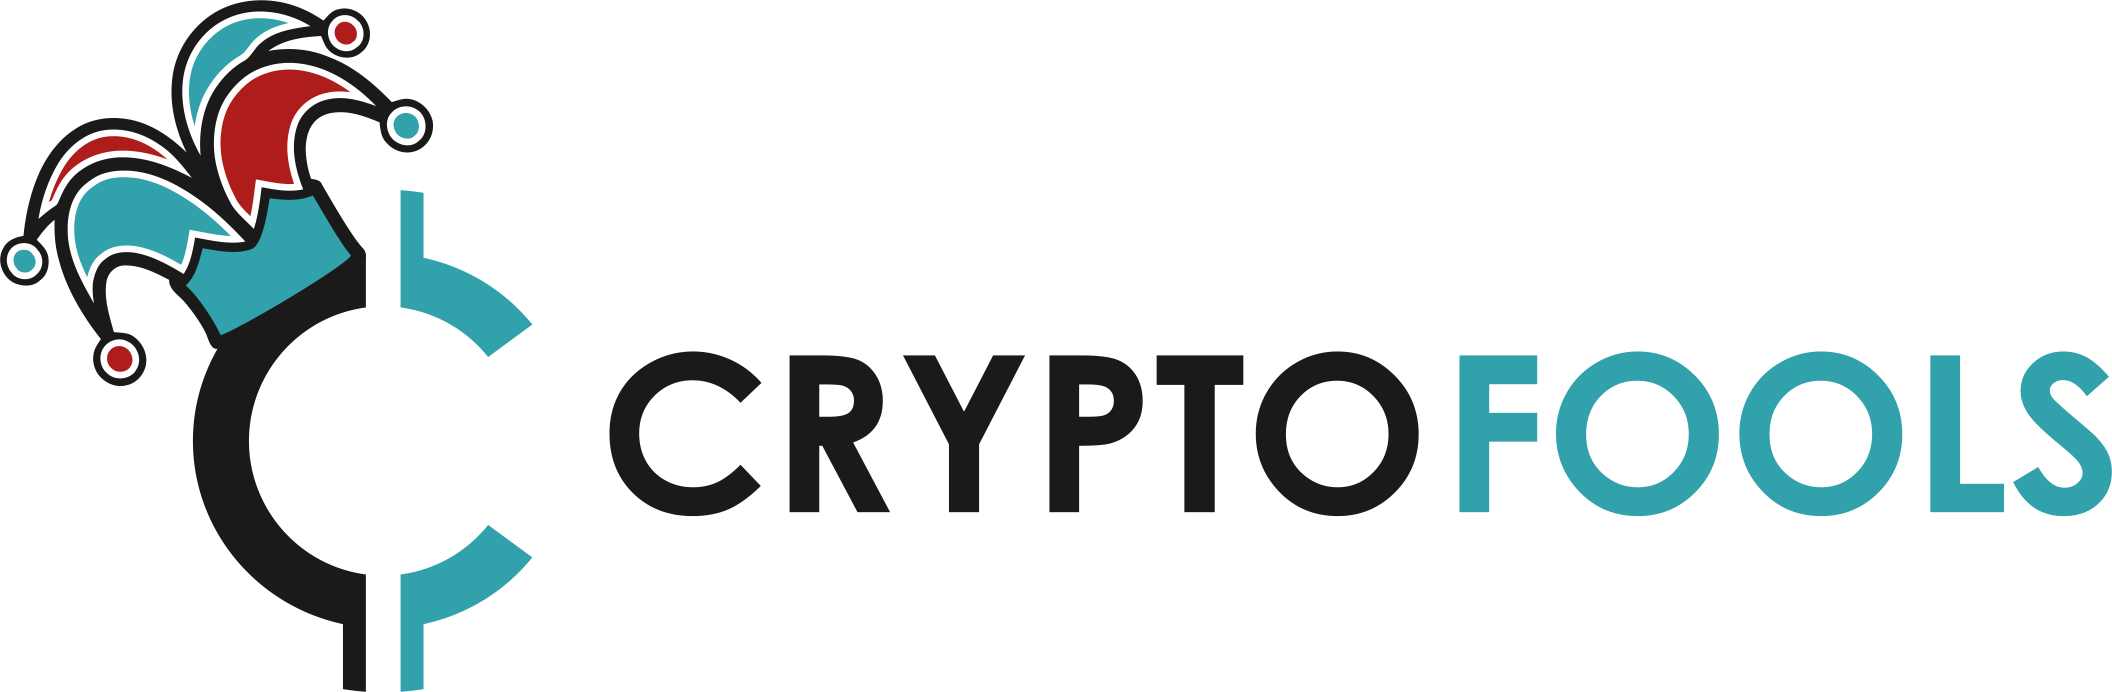 TheCryptoFools.com: Cryptocurrency Advice